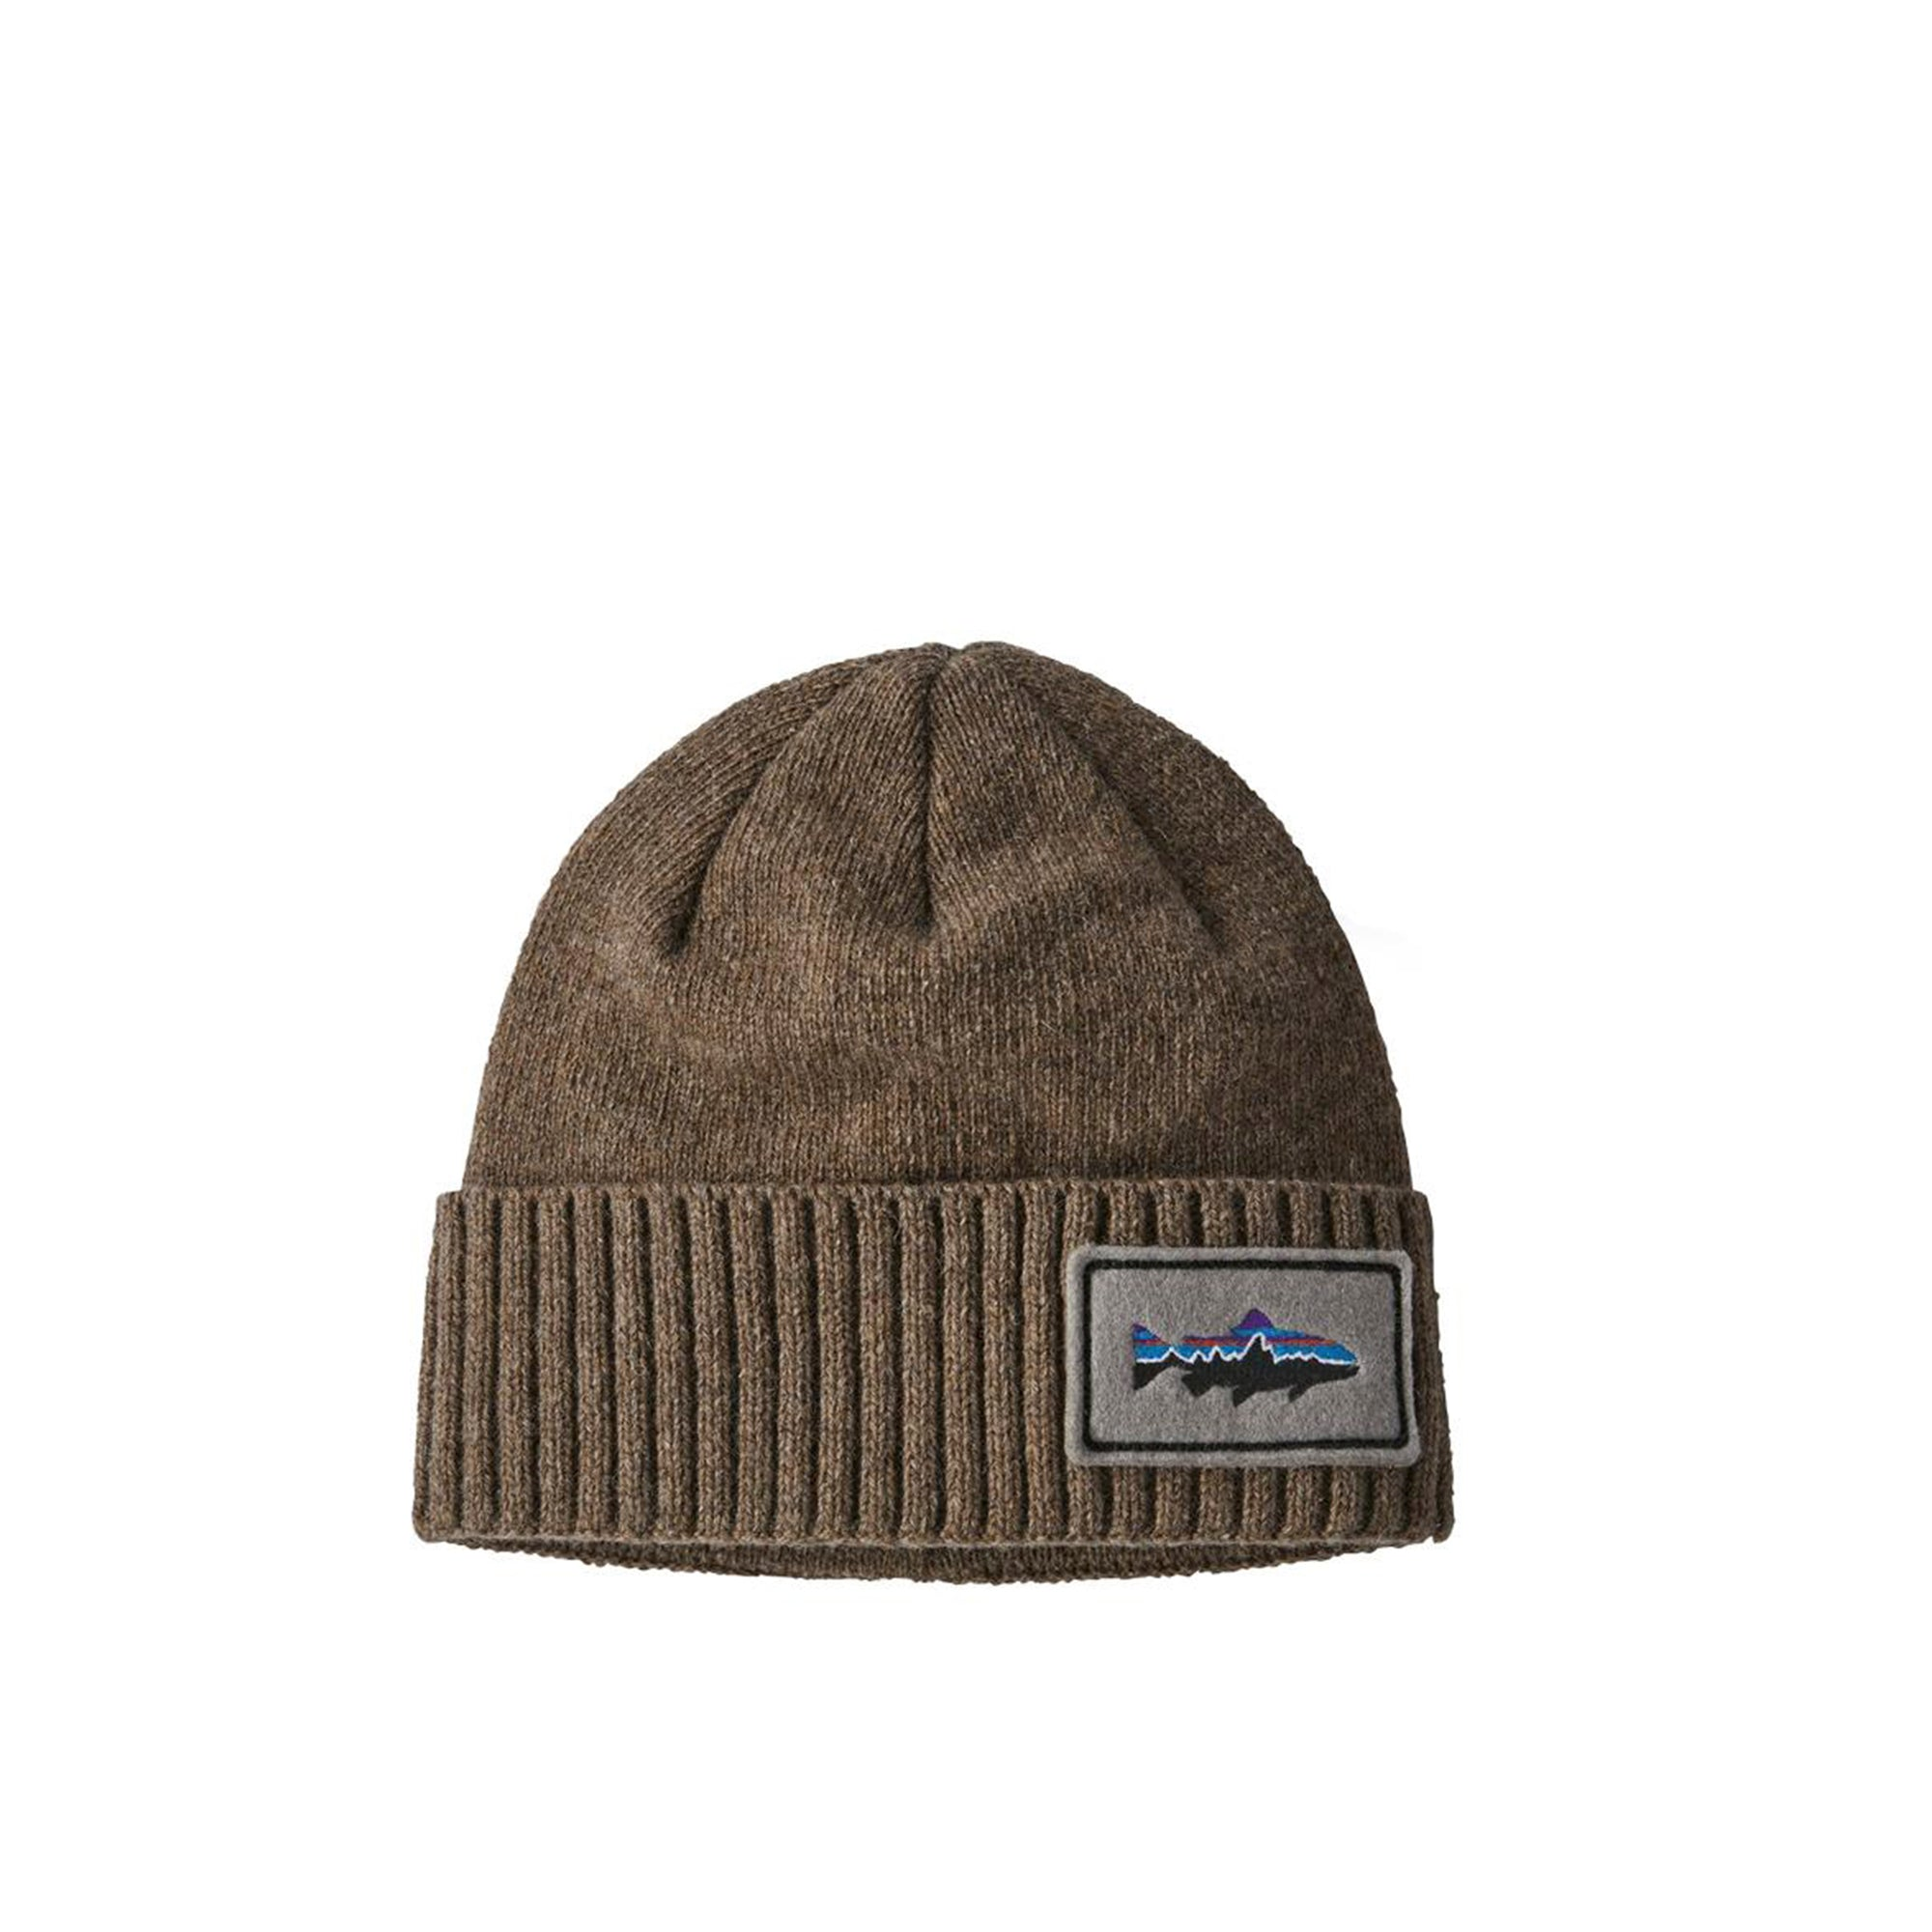 Patagonia Brodeo Beanie: Fitz Roy Trout: Ash Tan - The Union Project